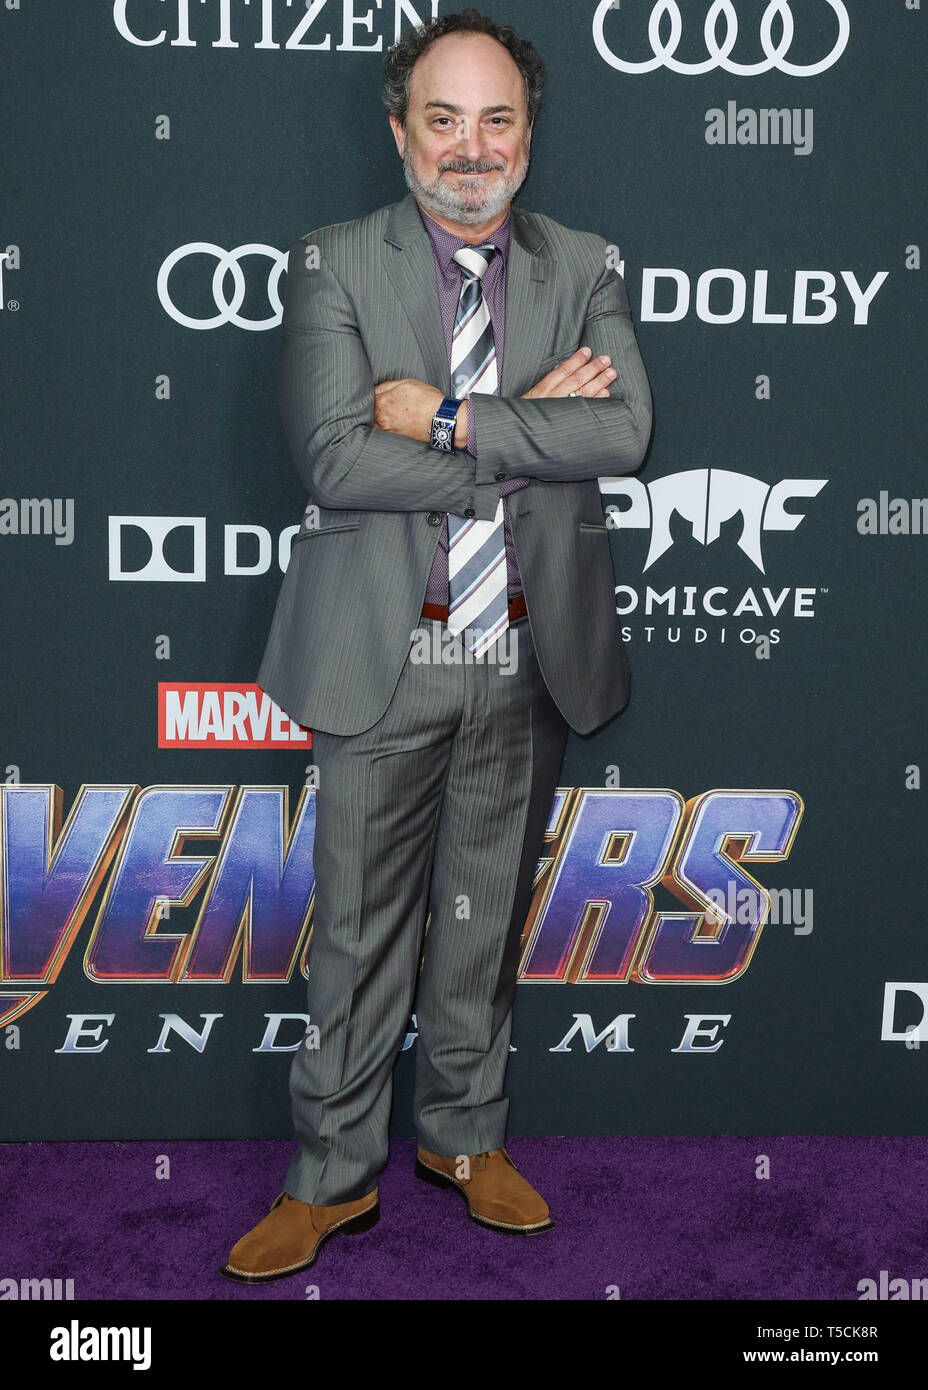 Los Angeles, United States. 22nd Apr, 2019.LOS ANGELES, CALIFORNIA, USA - APRIL 22: Kevin Pollak arrives at the World Premiere Of Walt Disney Studios Motion Pictures and Marvel Studios' 'Avengers: Endgame' held at the Los Angeles Convention Center on April 22, 2019 in Los Angeles, California, United States. (Photo by Xavier Collin/Image Press Agency) Credit: Image Press Agency/Alamy Live News Stock Photo